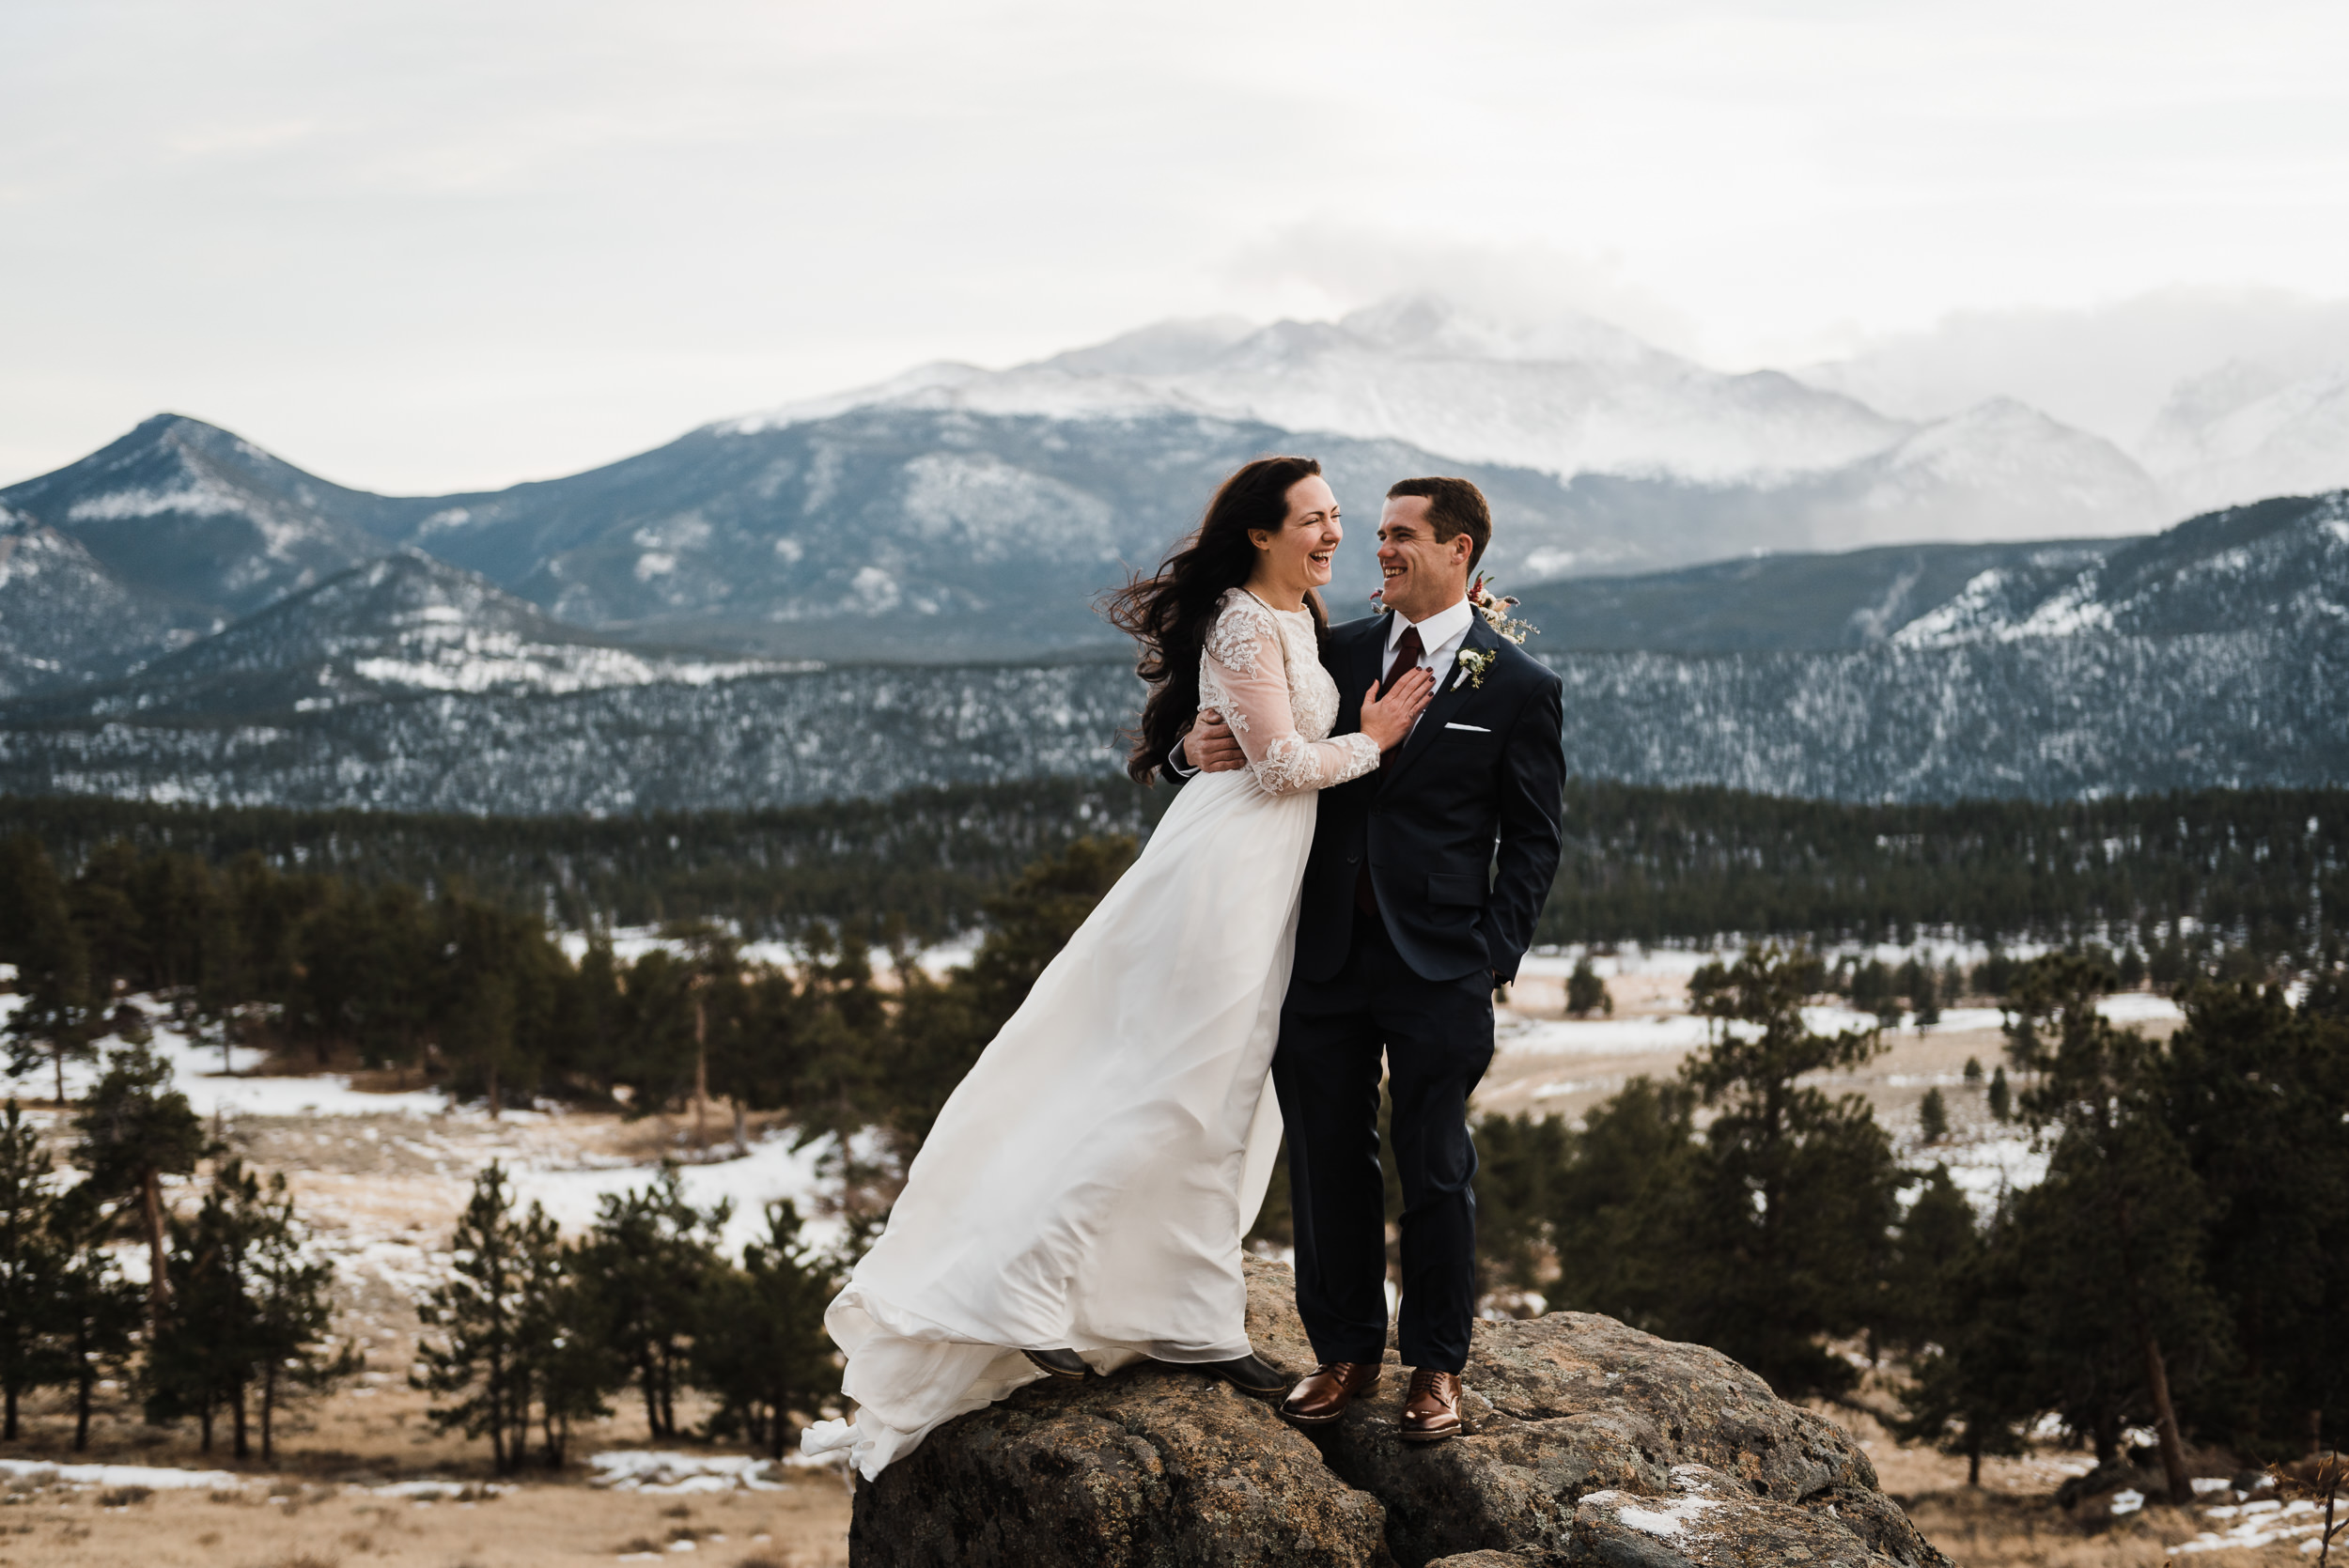 20181208-Colorado-Elopement-Rocky-Mountain-National-Park-Madison-Gauge-019.jpg